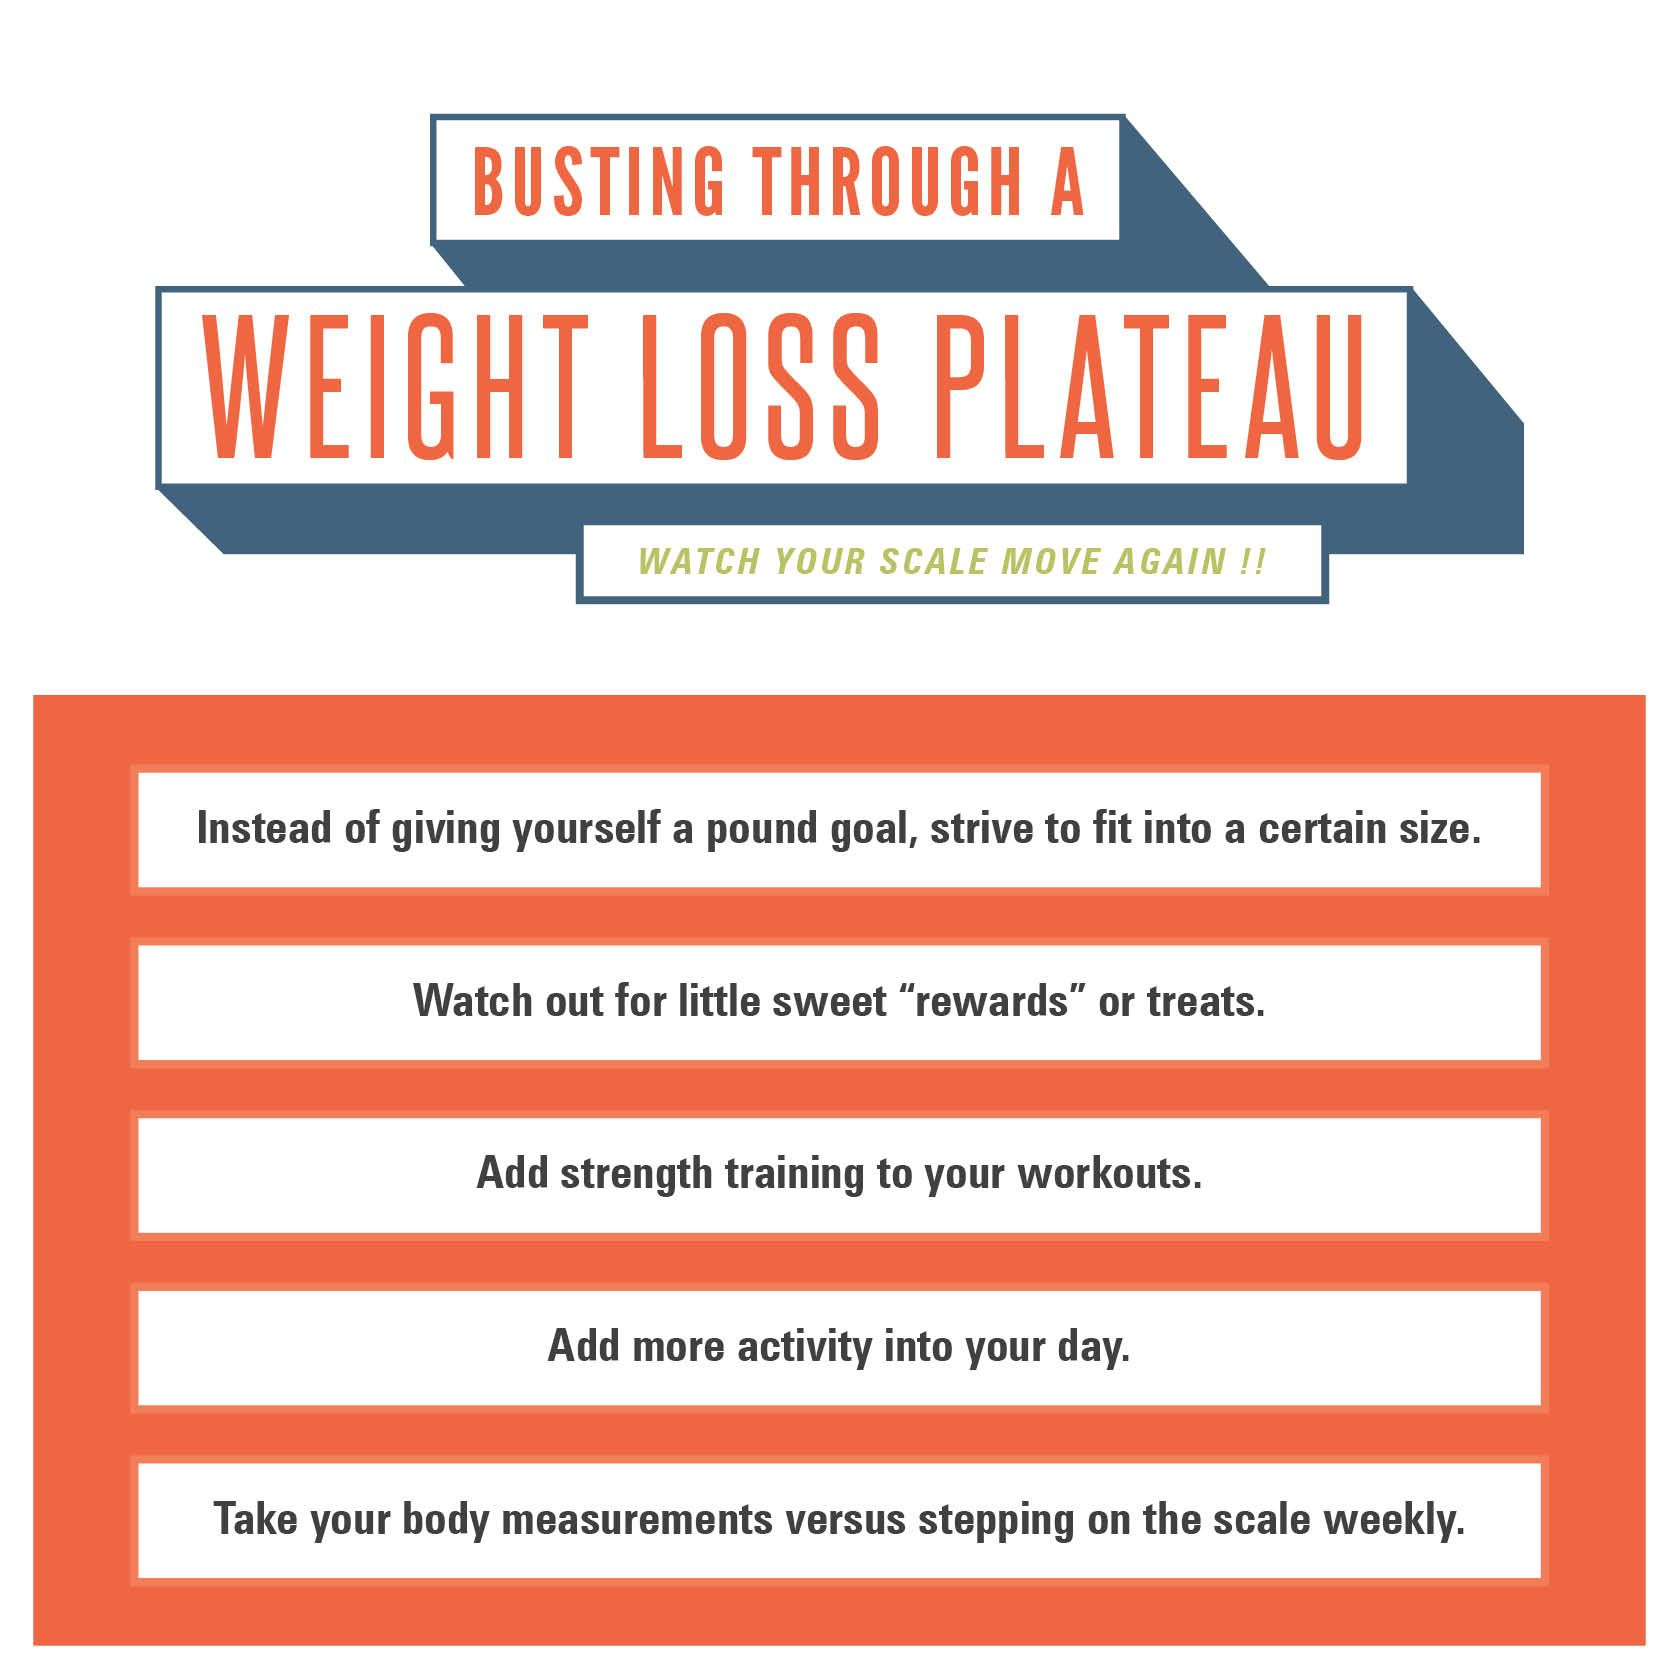 Busting through a weight-loss plateau